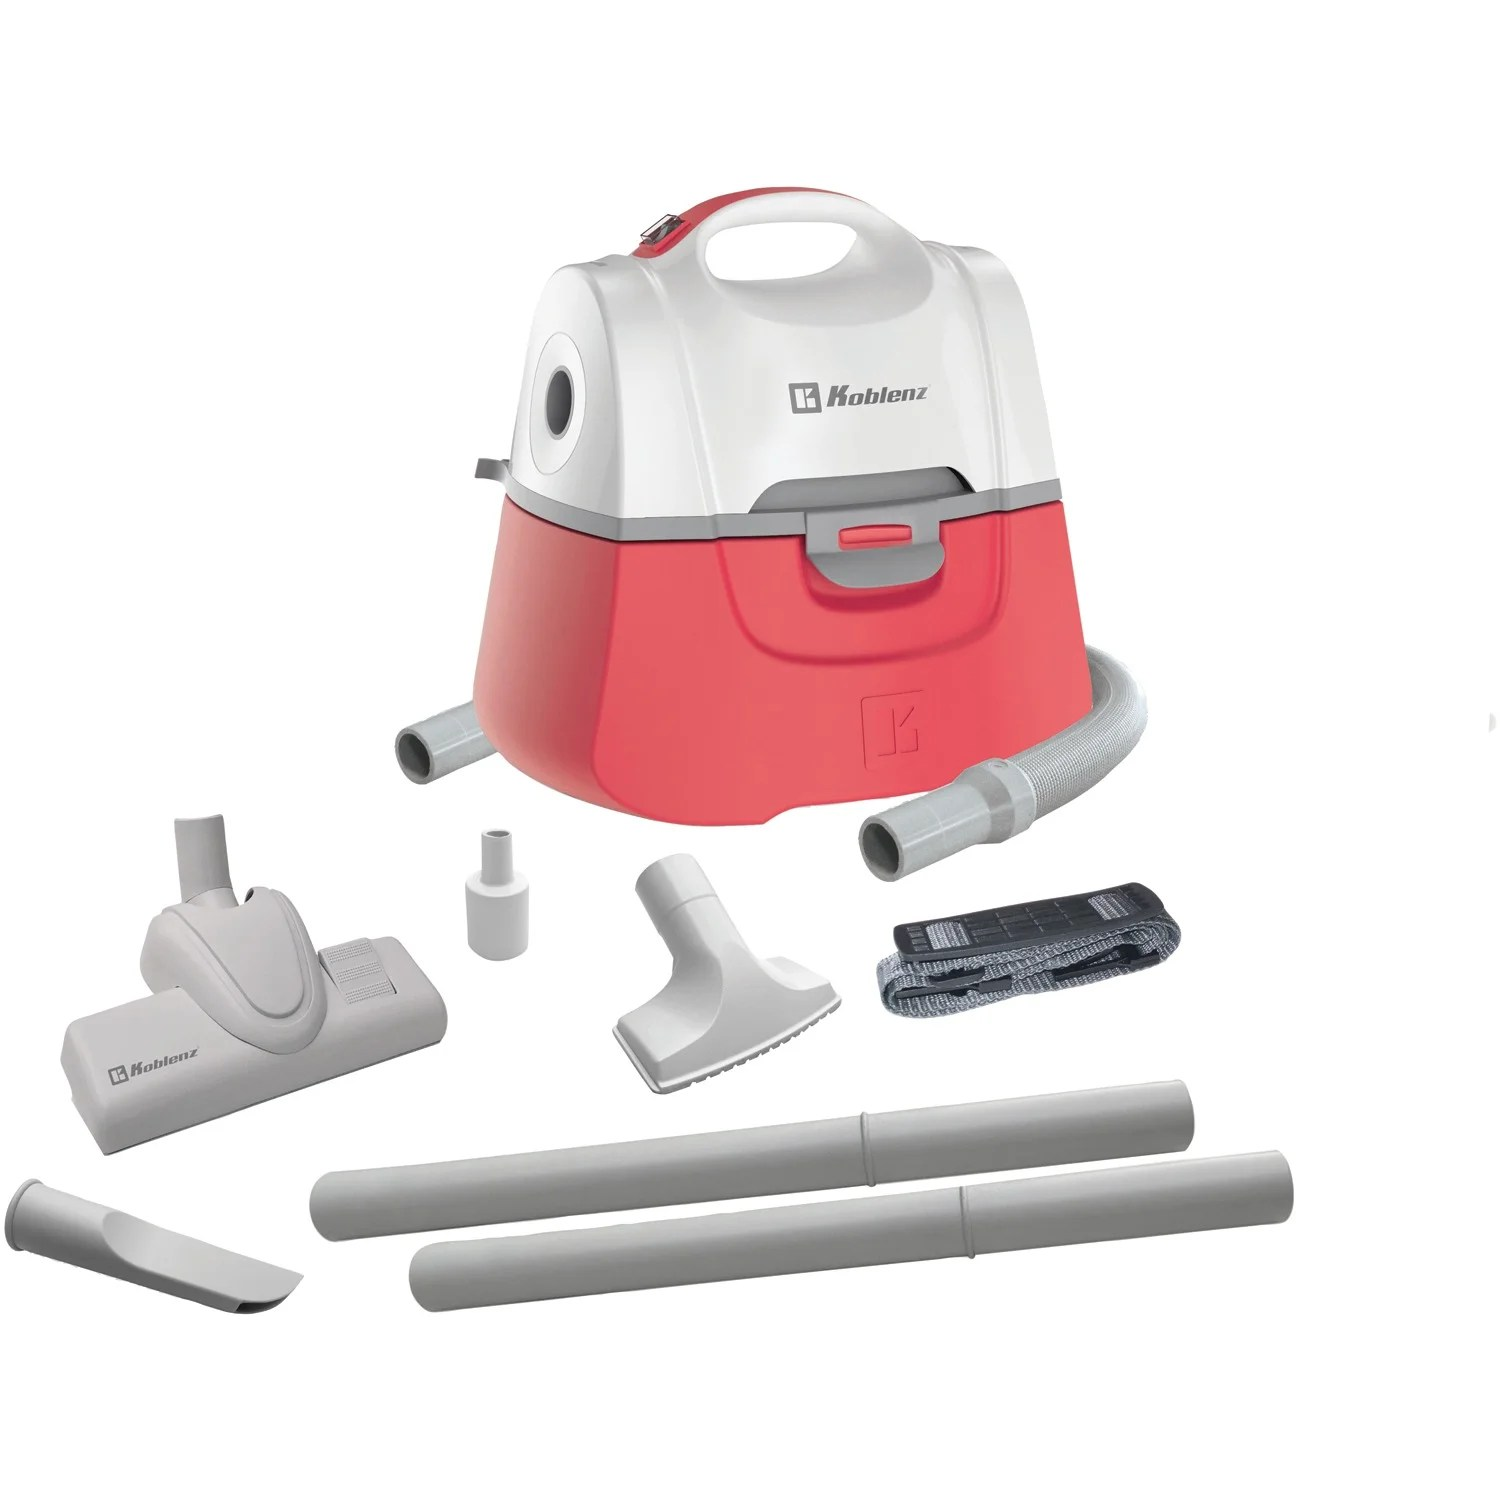 Copy Shop Koblenz 3 Gallon All Purpose Bagless Canister Vacuum